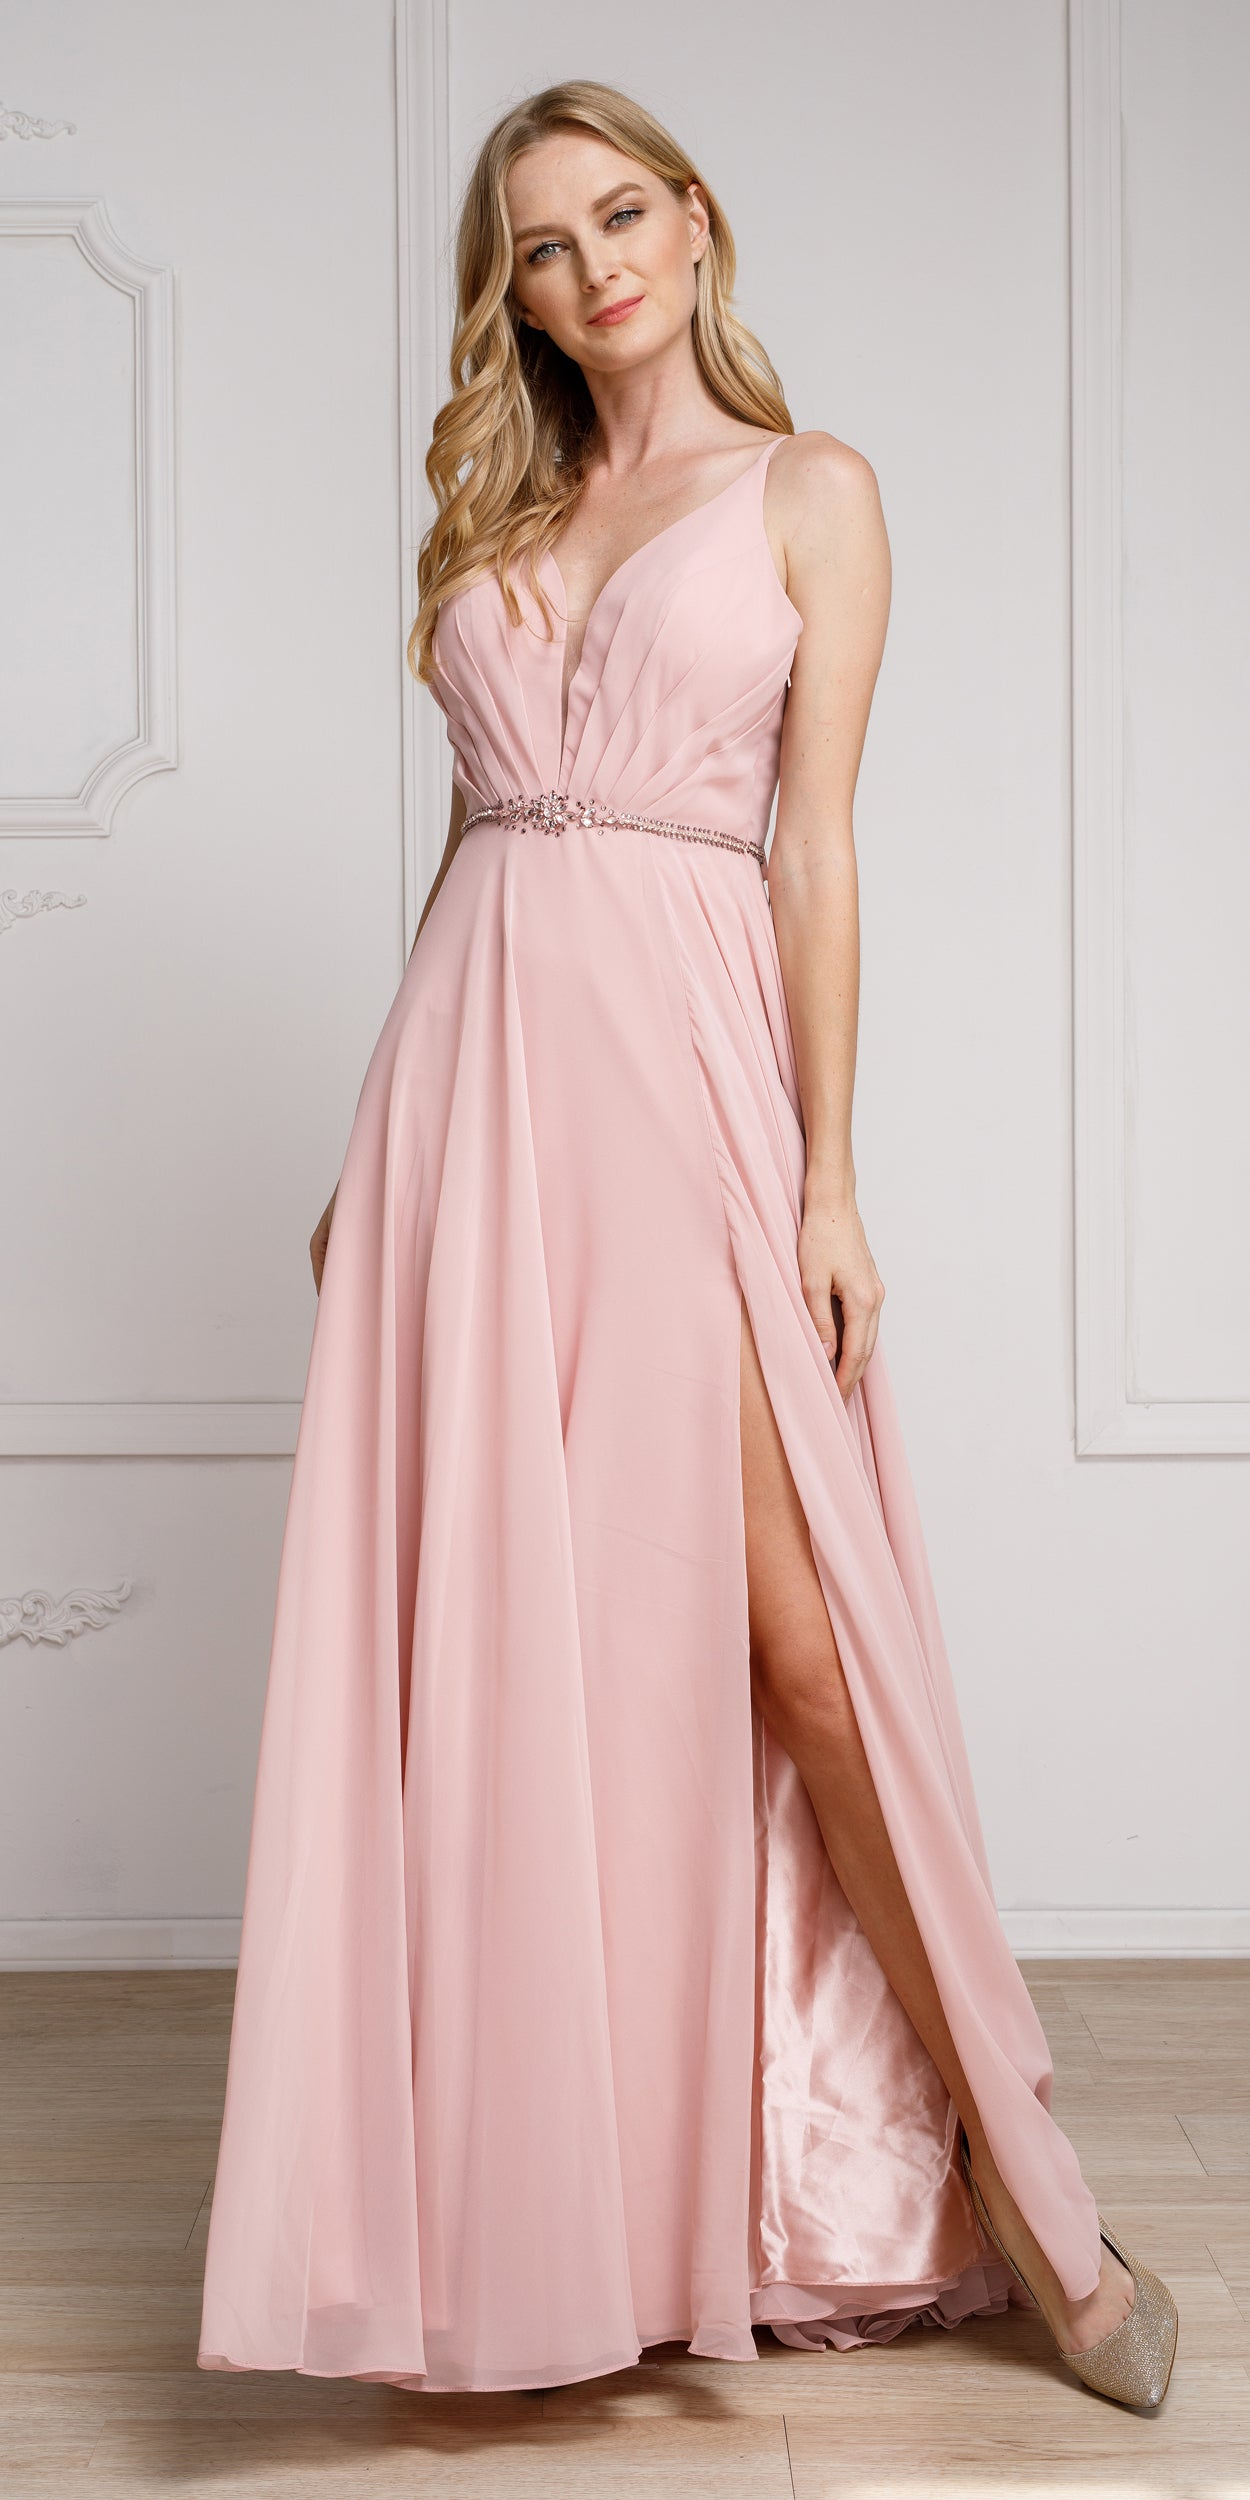 Image of V-neck Rhinestones Belt Front Slit Long Bridesmaid Dress in Rose